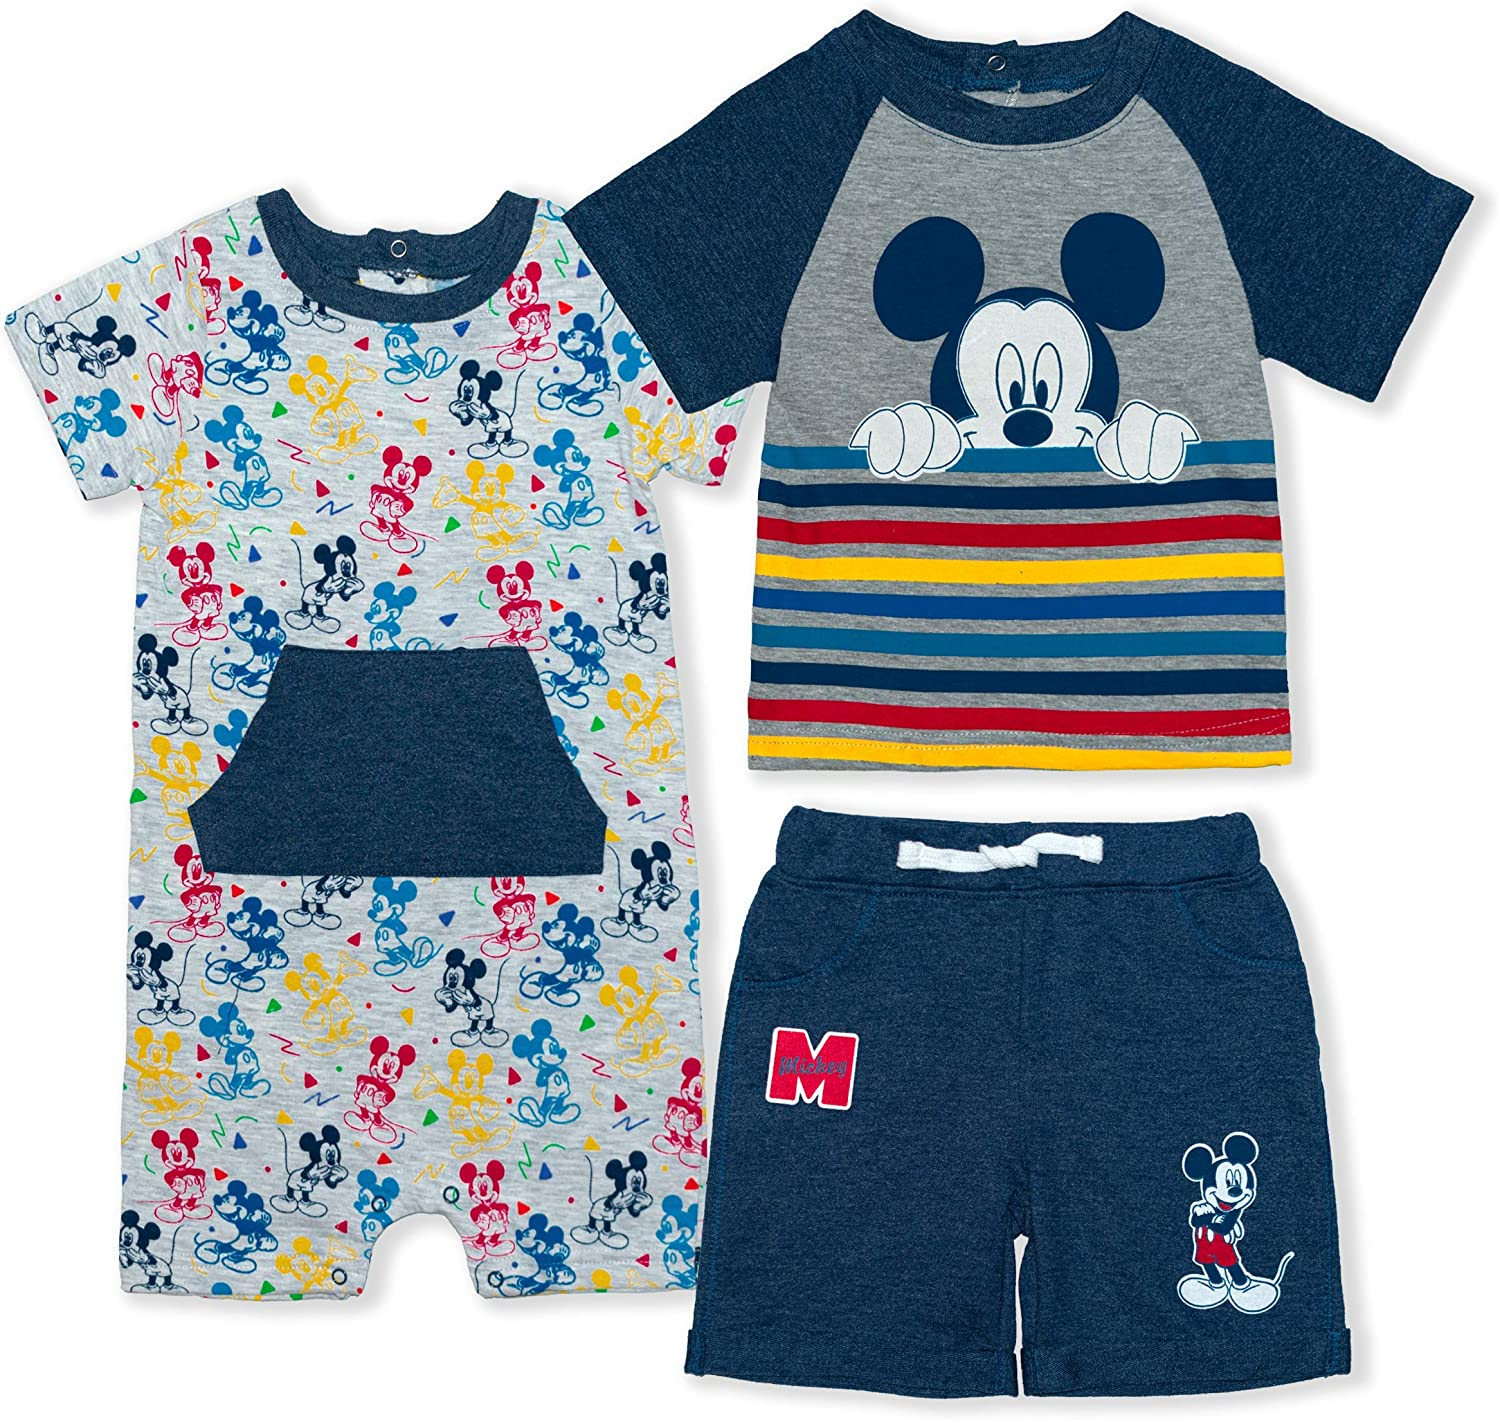 Disney Boy's Mickey Mouse Baby Shorts, Tee and Romper Toddler Clothes Set: Clothing